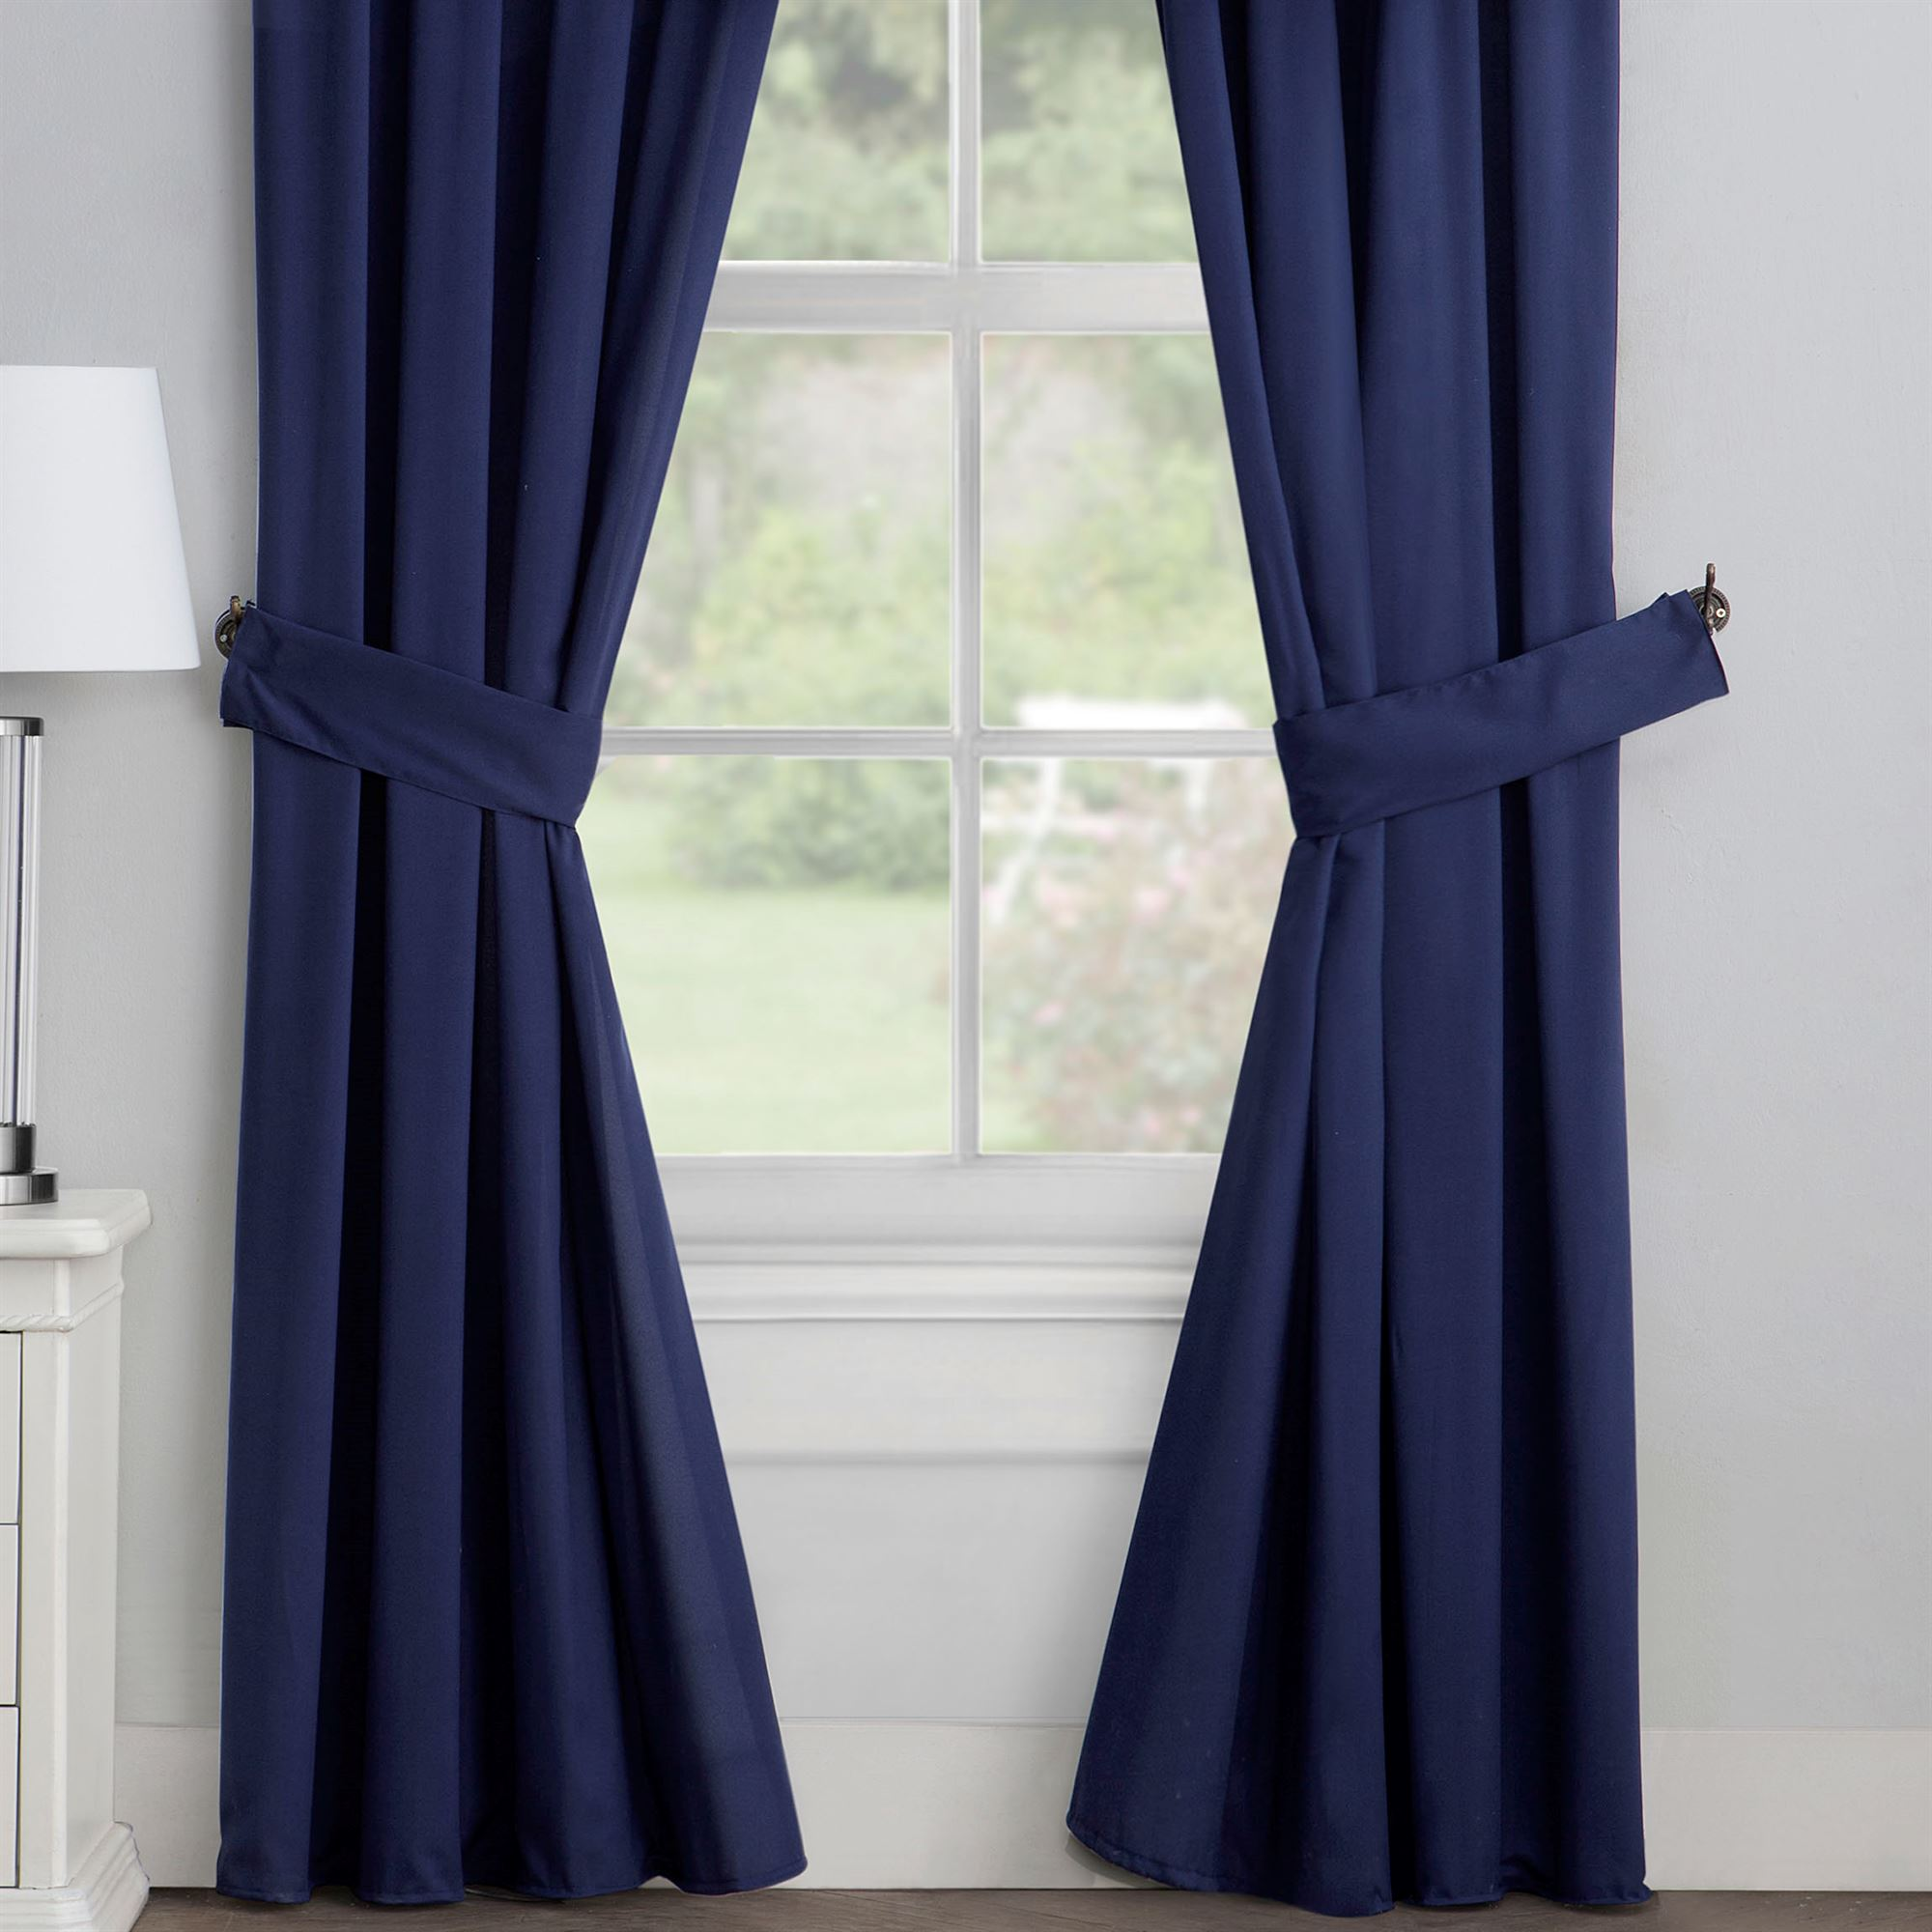 of royal elegant window furniture design curtain fresh blue curtains com